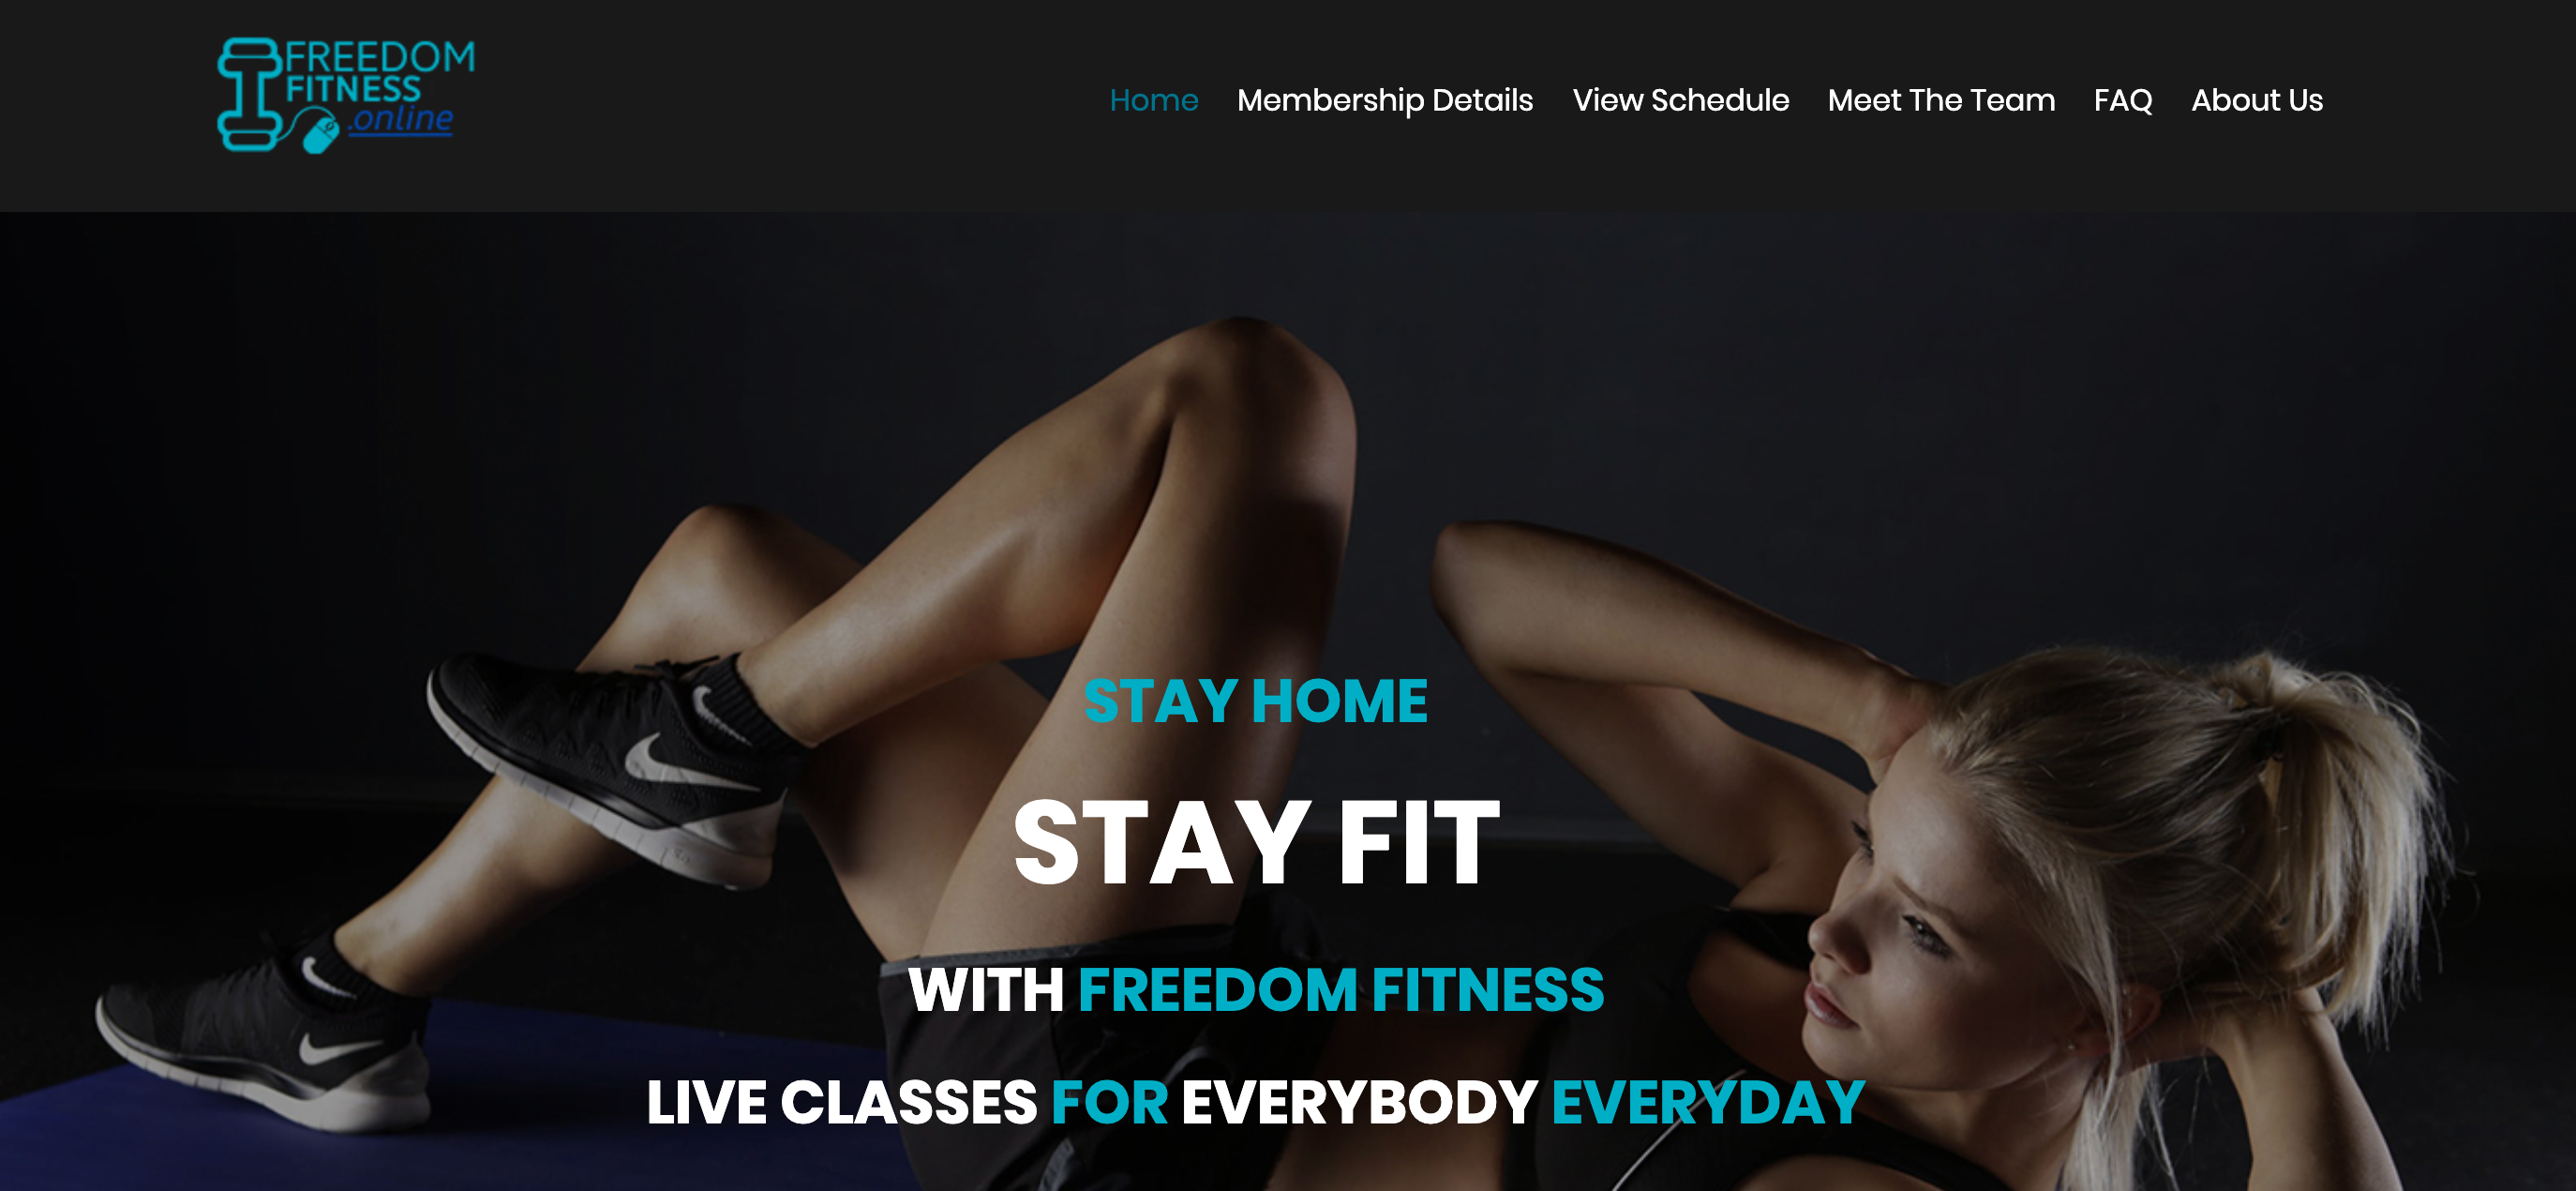 freedom fitness website